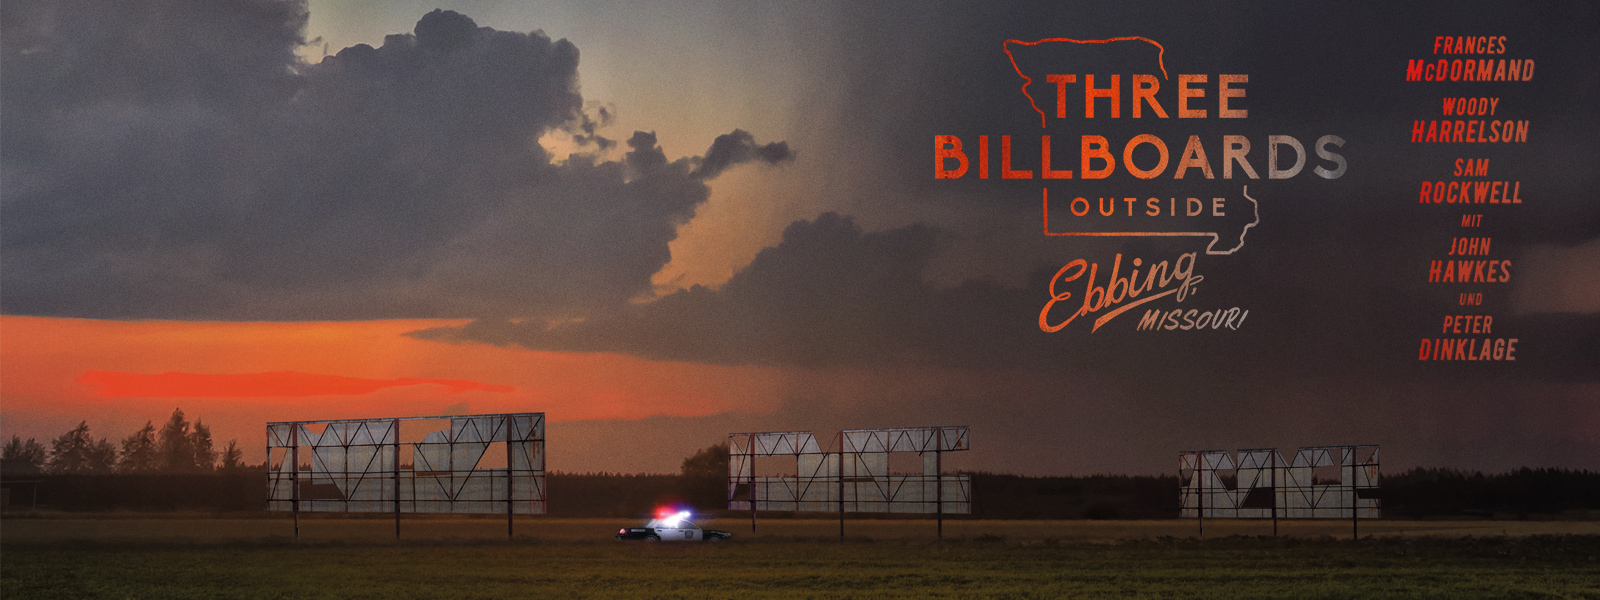 Three billboards outside ebbing, missouri, Filmplakat - kekinwien.at